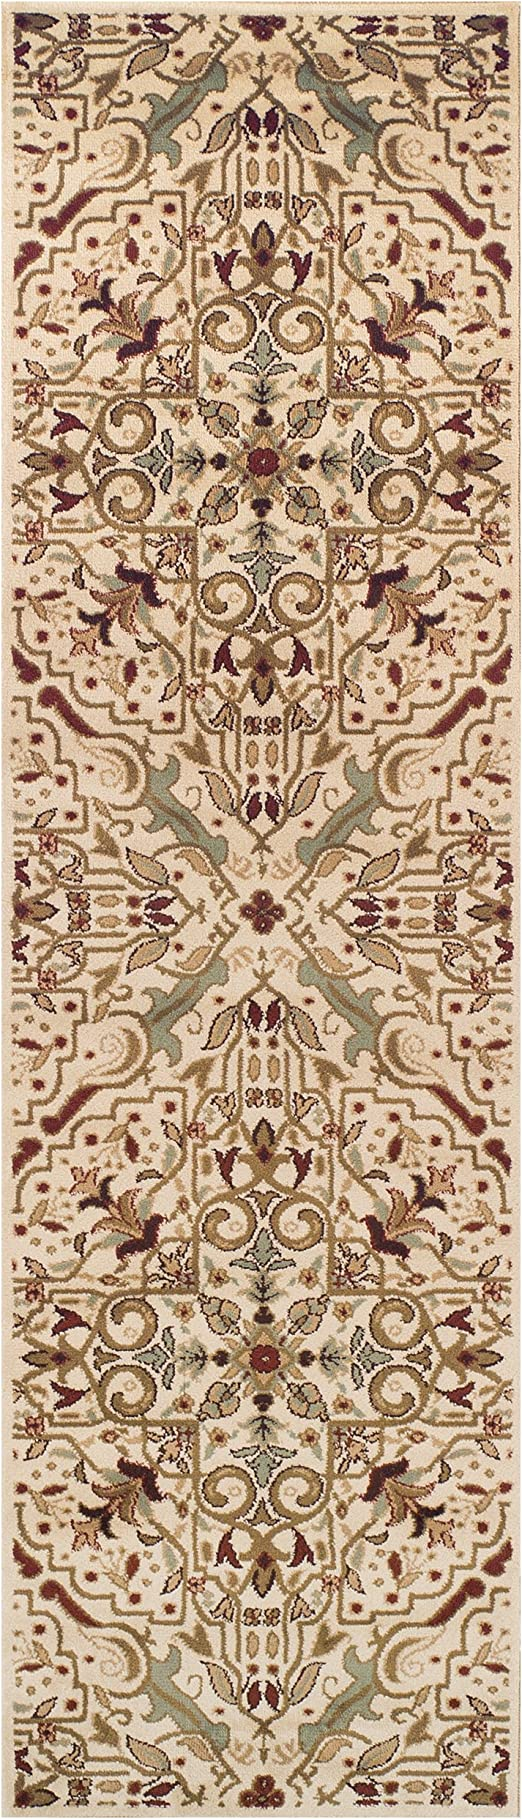 Amazon Com Superior Elegant Camille Collection Area Rug 10mm Pile Height With Jute Backing Intricate Traditional Rug Pattern Anti Static Water Repellent Rugs 2 7 X 8 Runner Furniture Decor